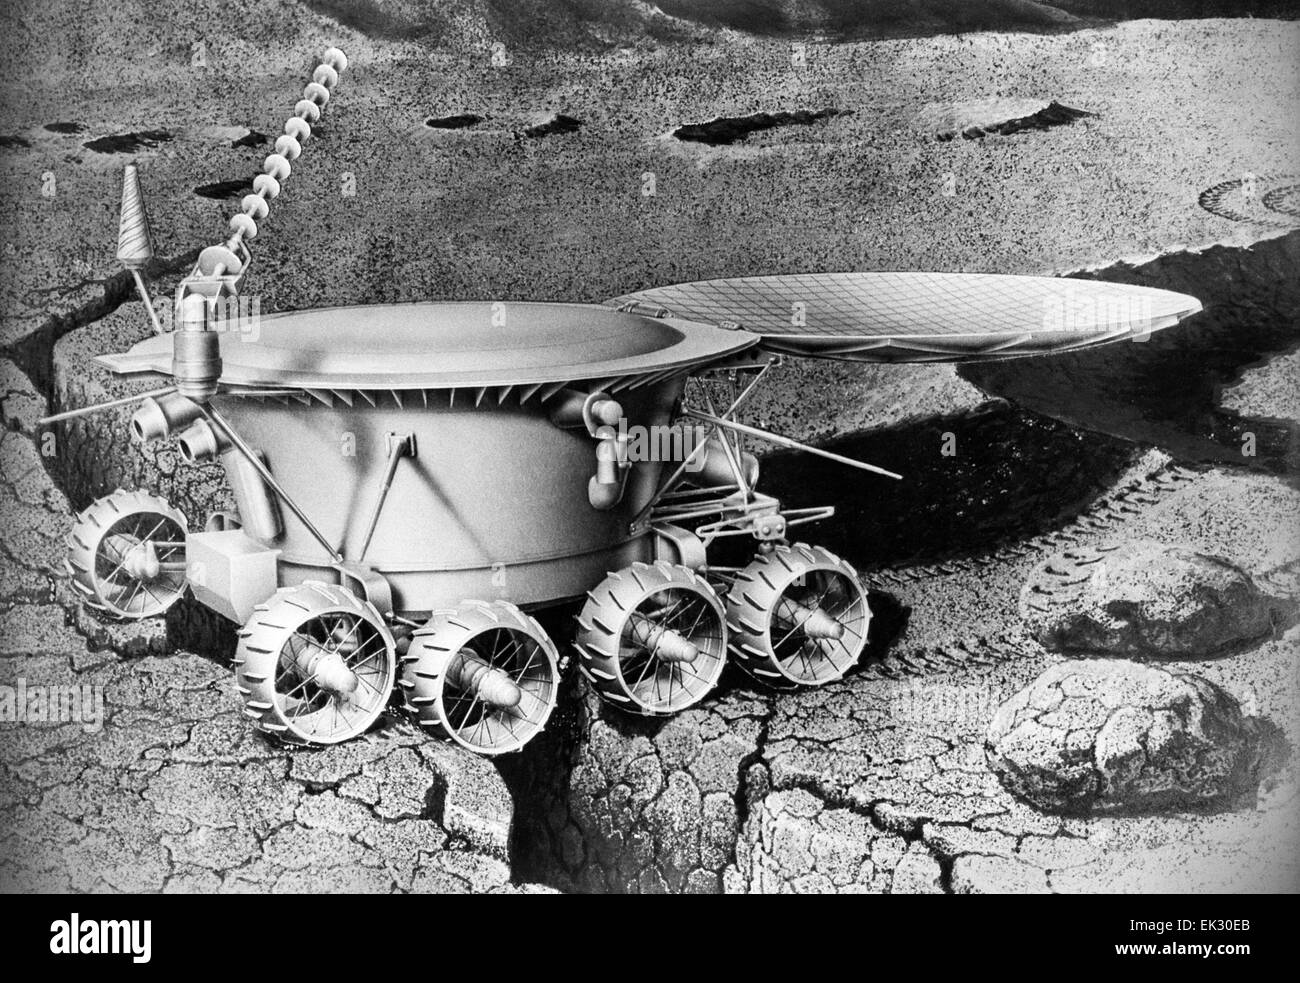 Lunokhod-1, unmanned lunar rover, on the Moon drawing ...